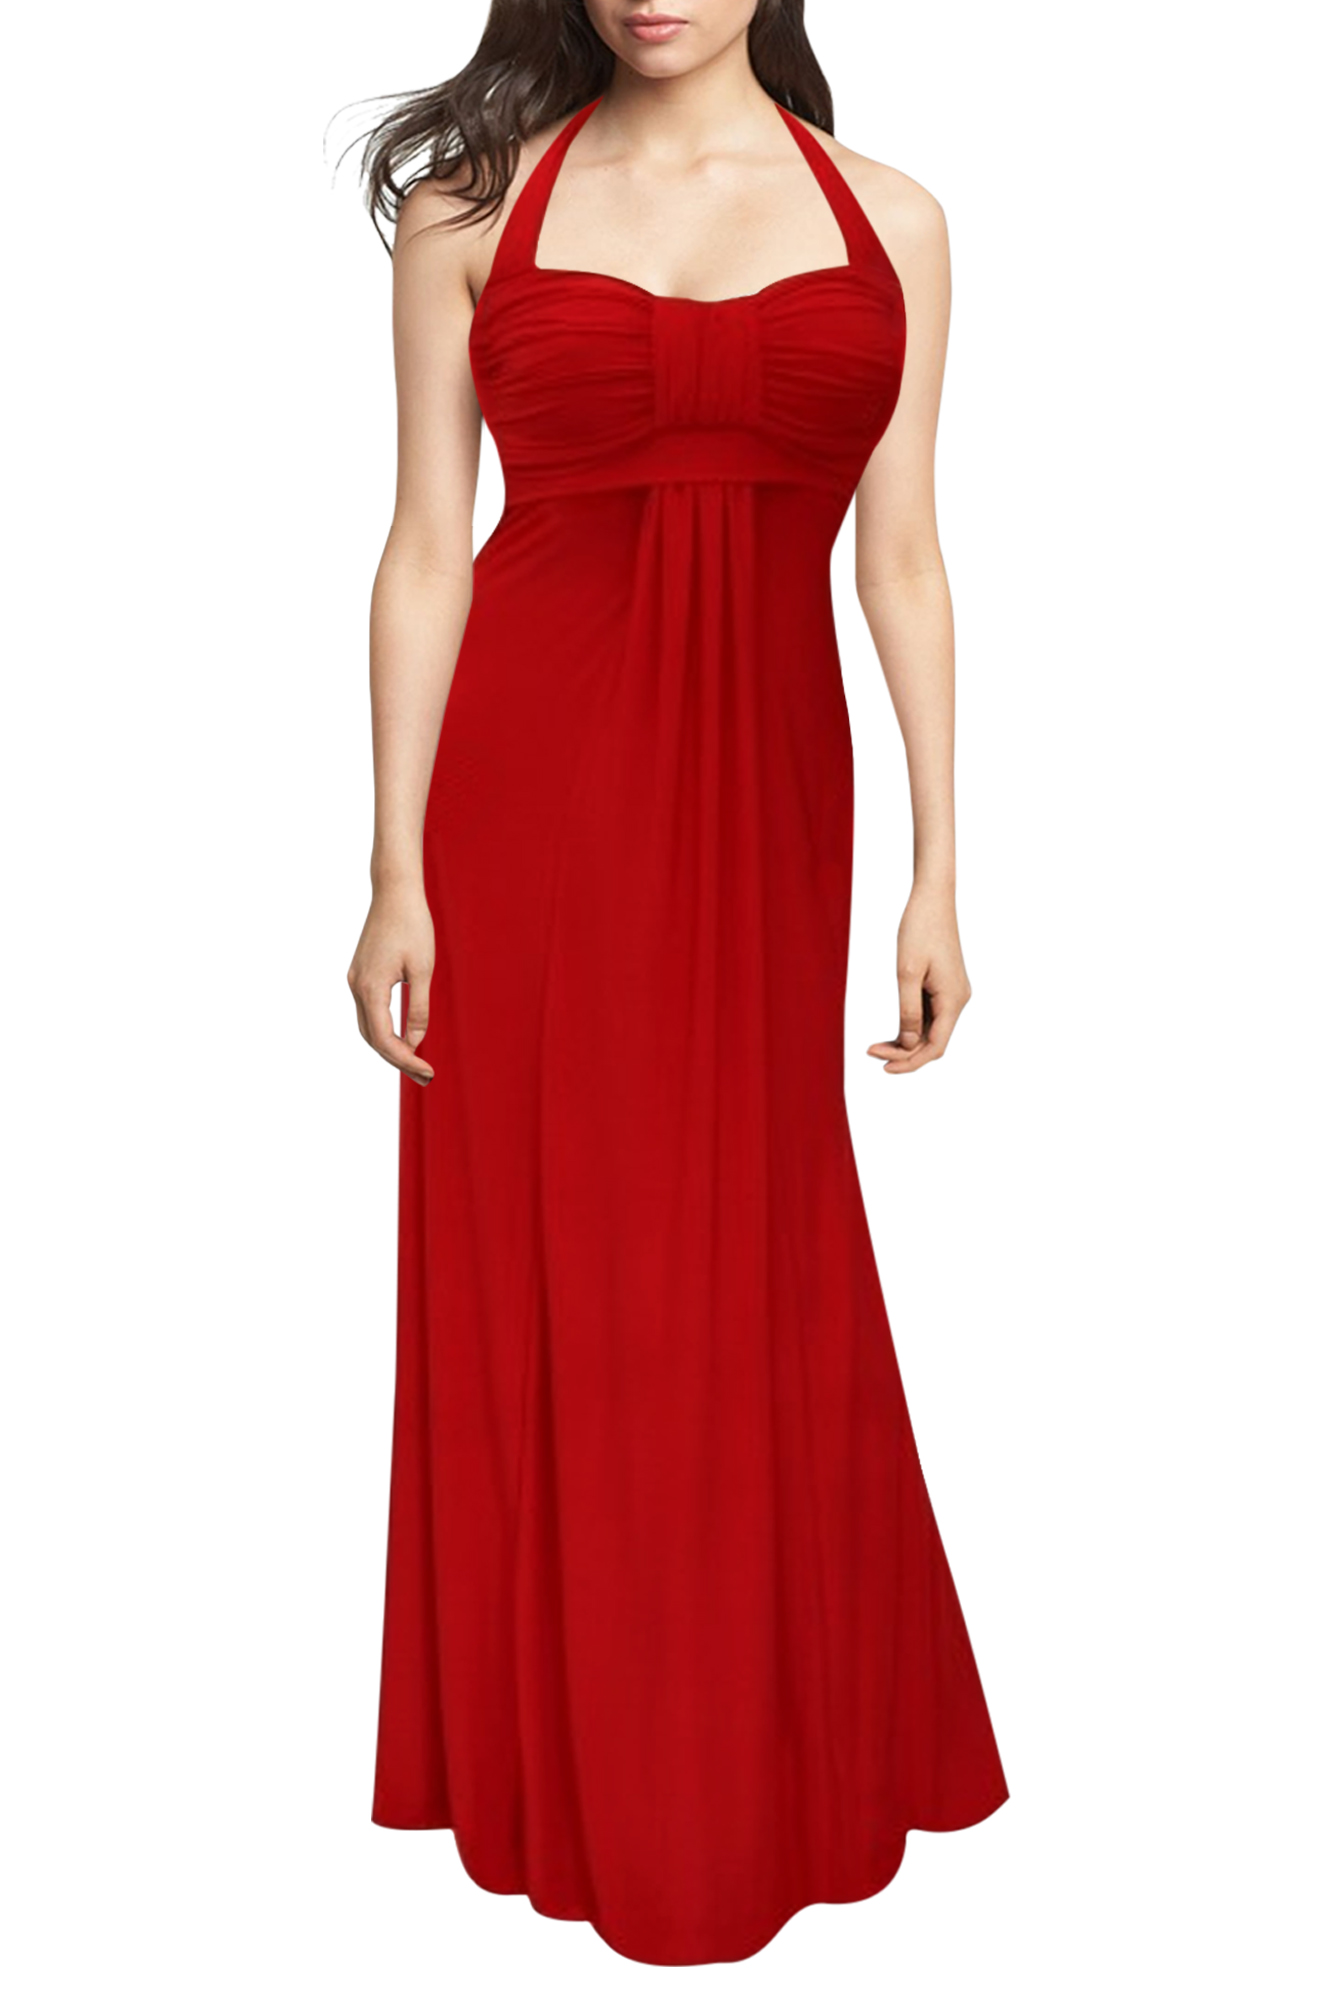 Wholesale Plus Size Dresses. Get the look you need when you shop our selection of plus size dresses. Whether it's a fitted evening dress, or cool maxi dress for summer, you'll find it here at prices that can't be beat! Don't forget the accessories to take your look to the next level. Sort By.